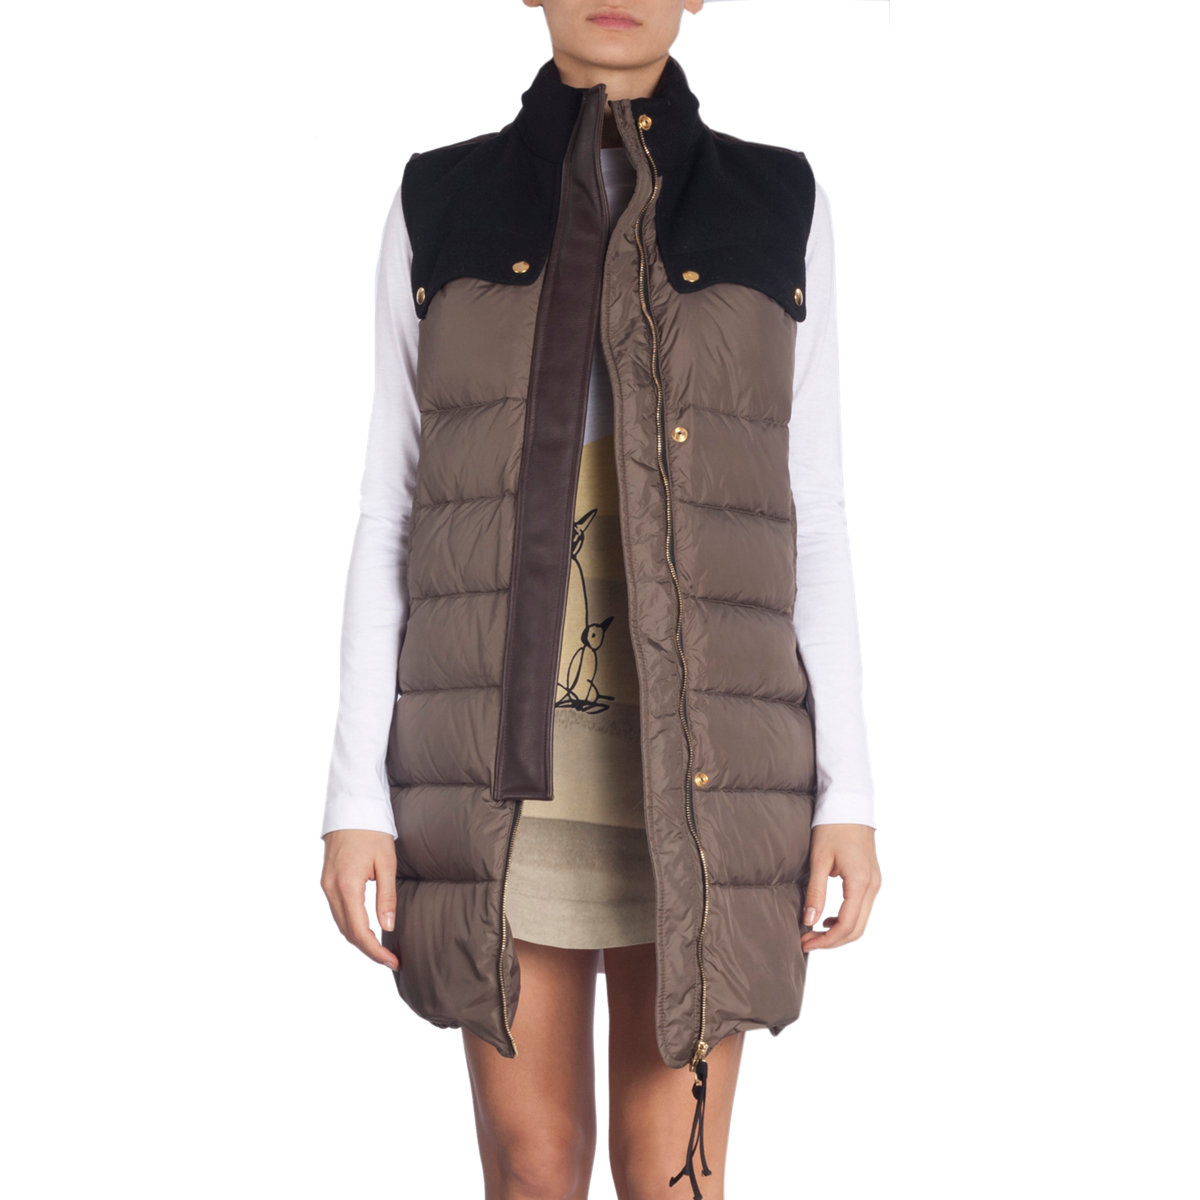 Marni Long Puffer Vest in Gray (olive)